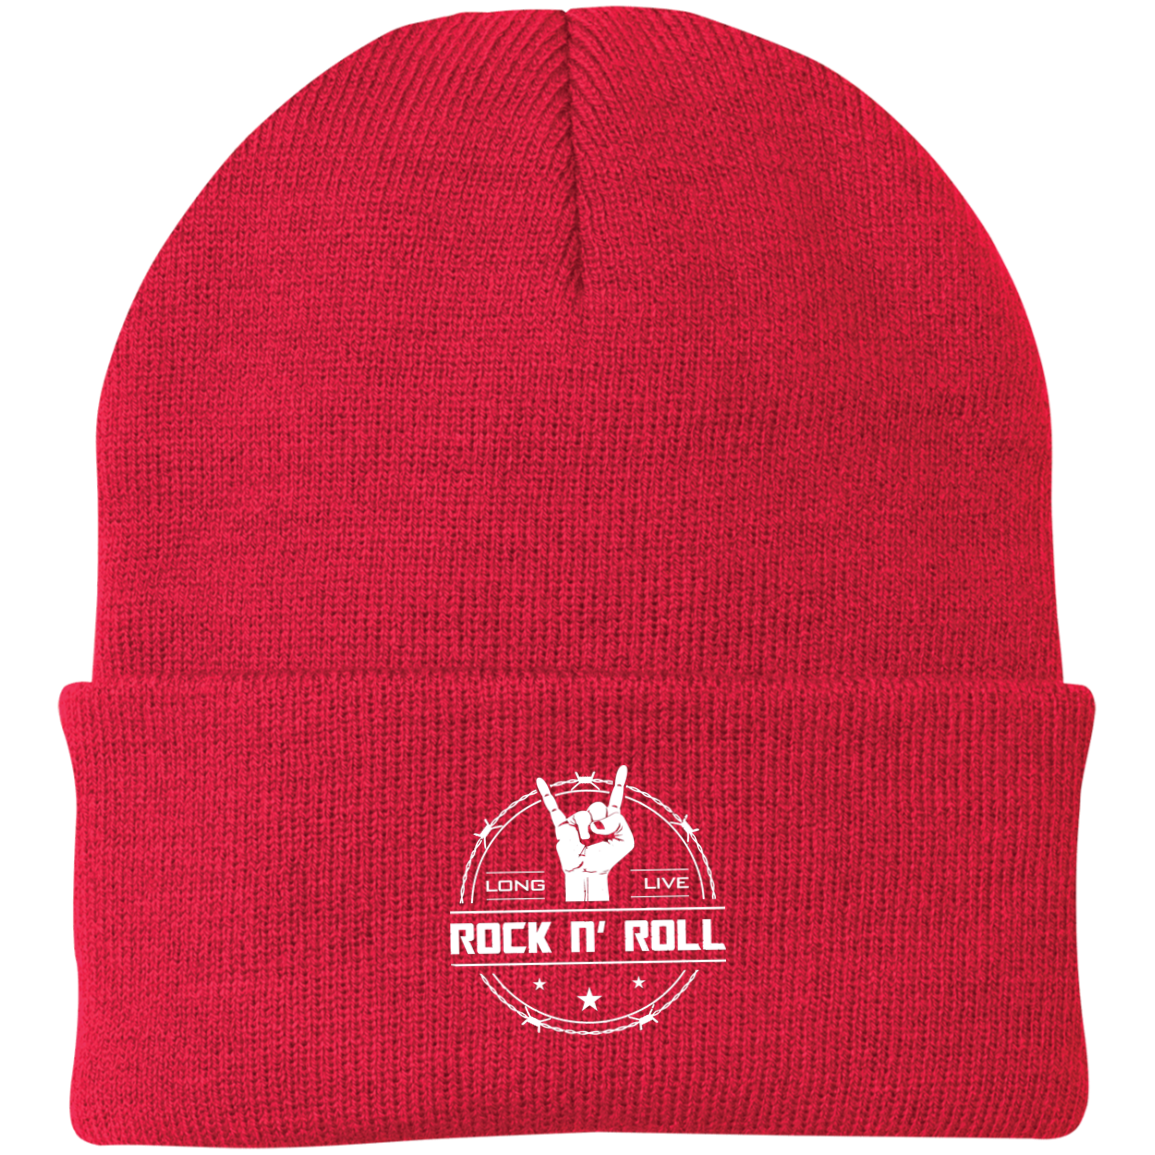 cool long live rock and roll knit cap